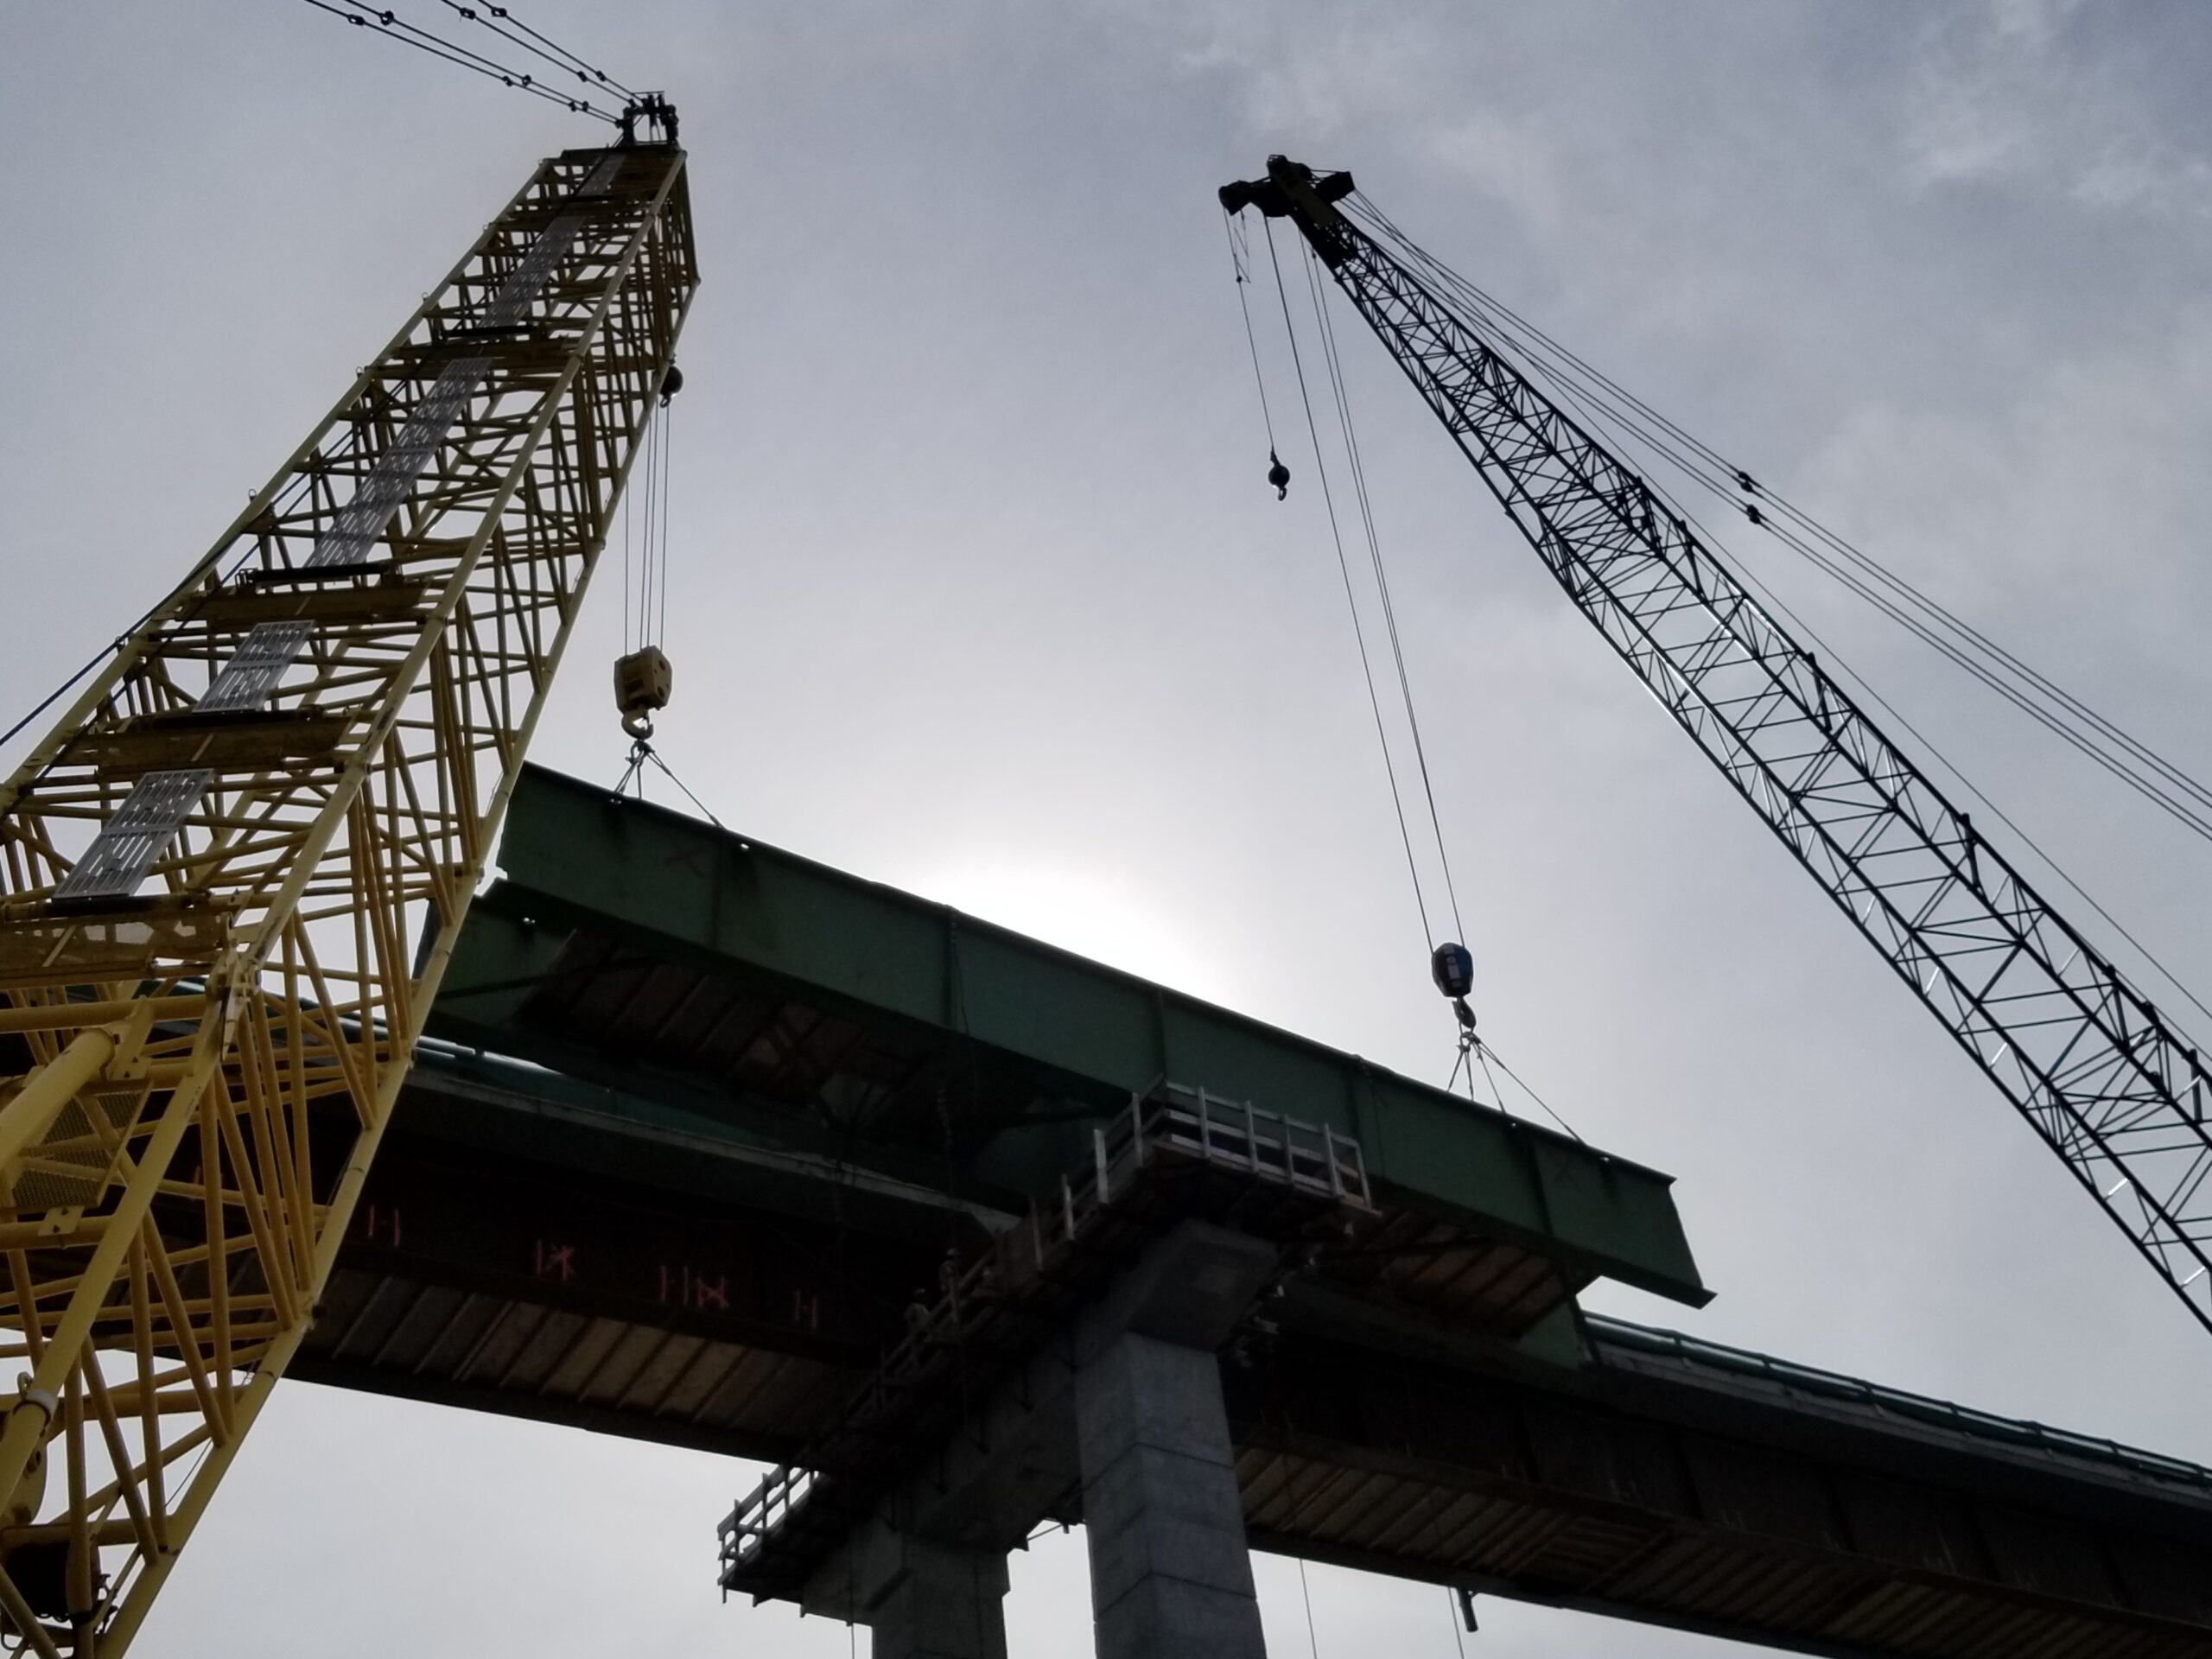 Both cranes hooked up to the first haunch girder removal